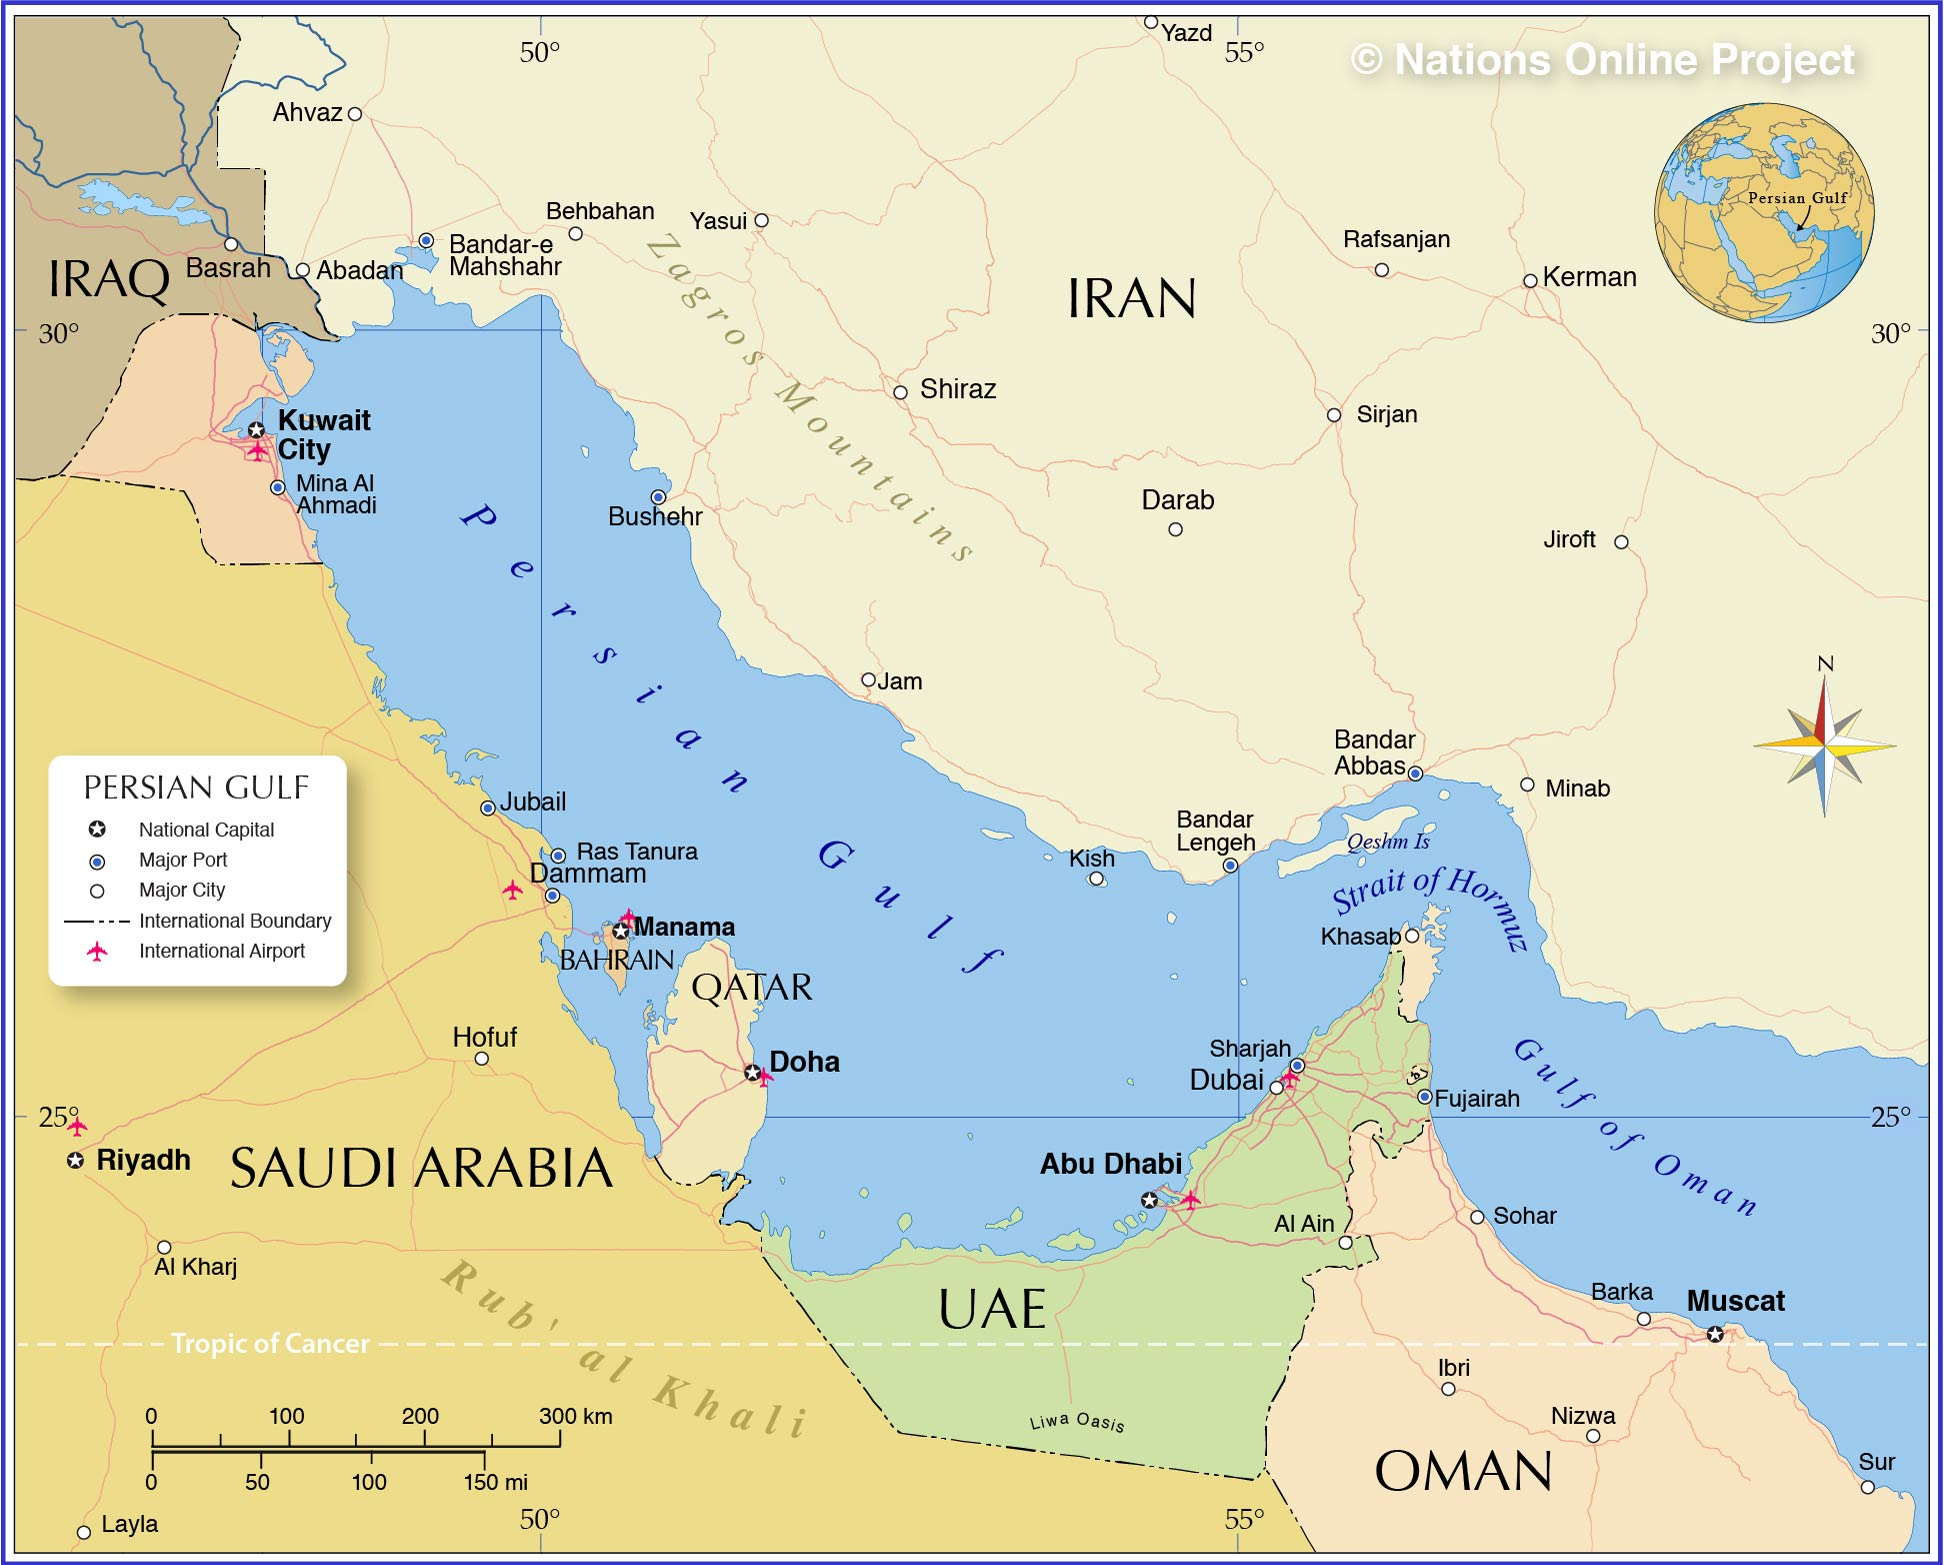 Image of: Political Map Of Persian Gulf Nations Online Project